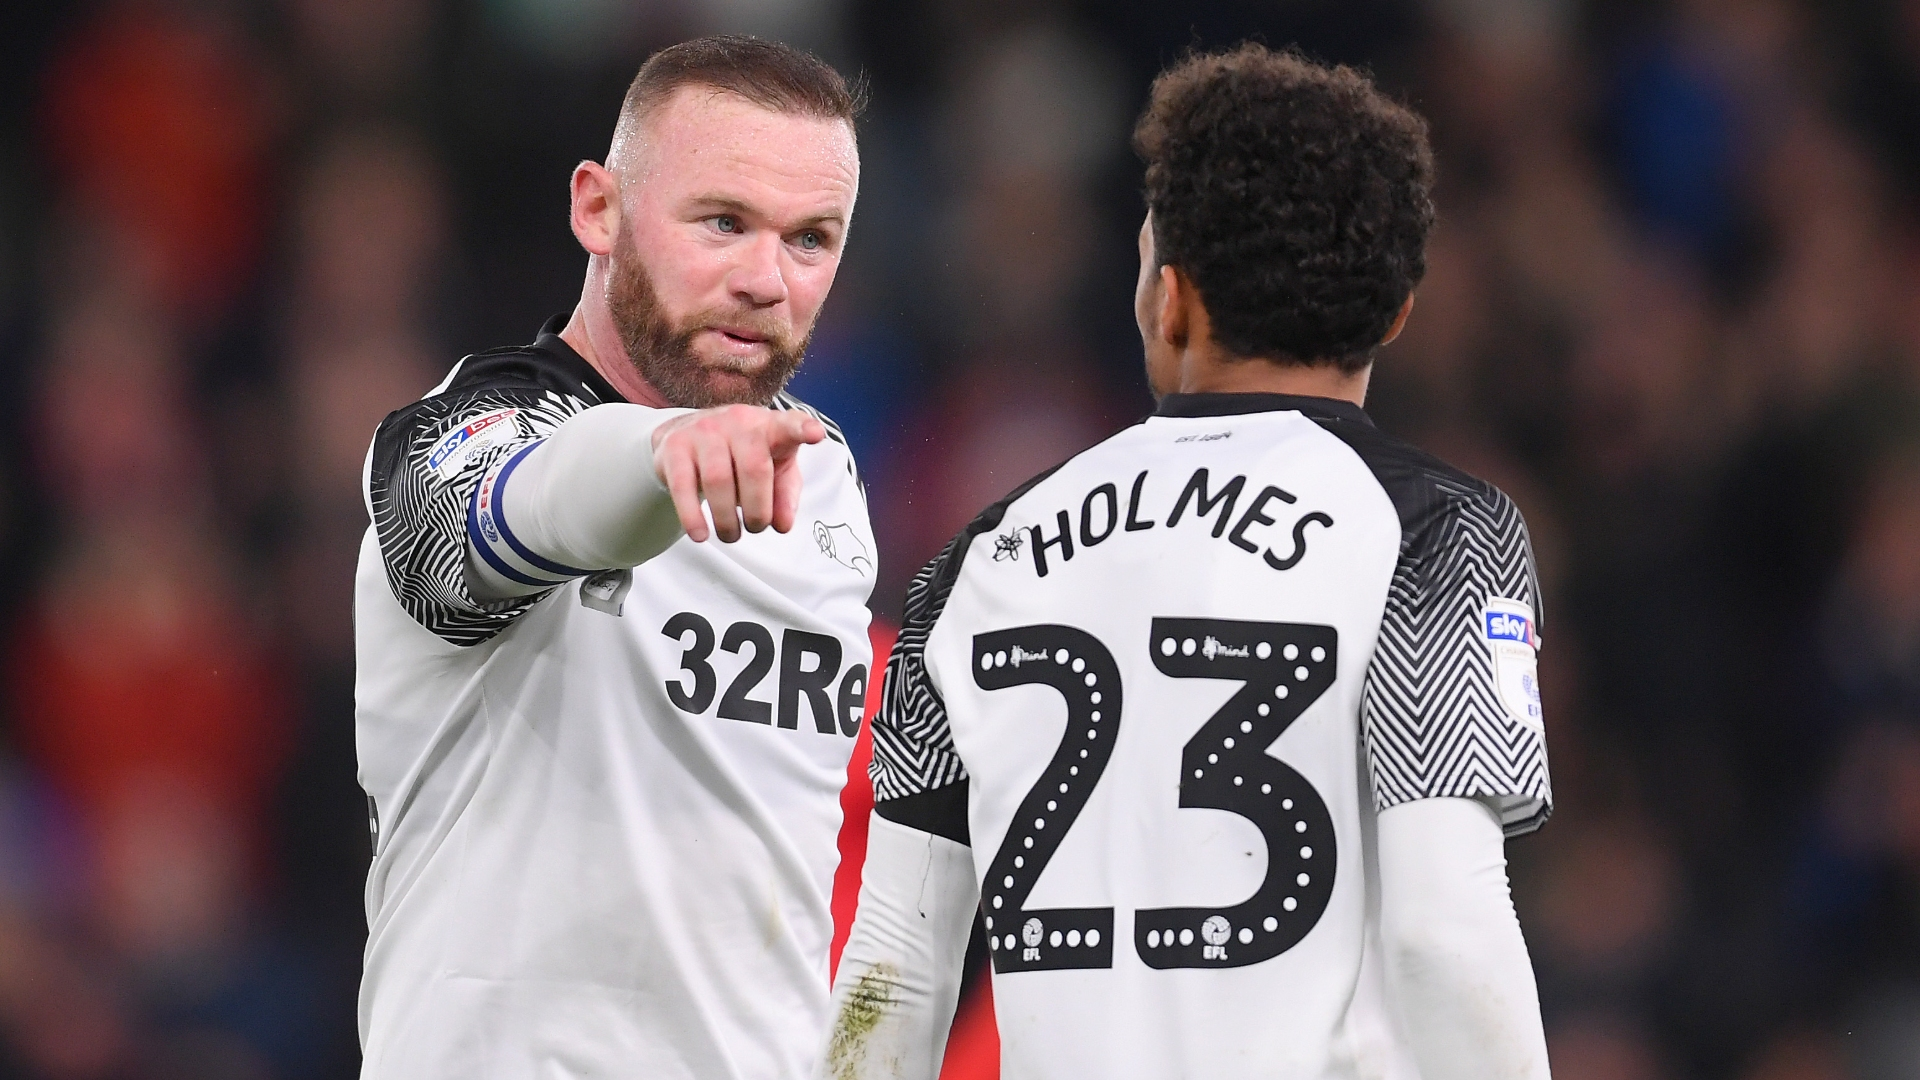 'Rooney is a winner' - USMNT midfielder Holmes credits England star for helping him take next step